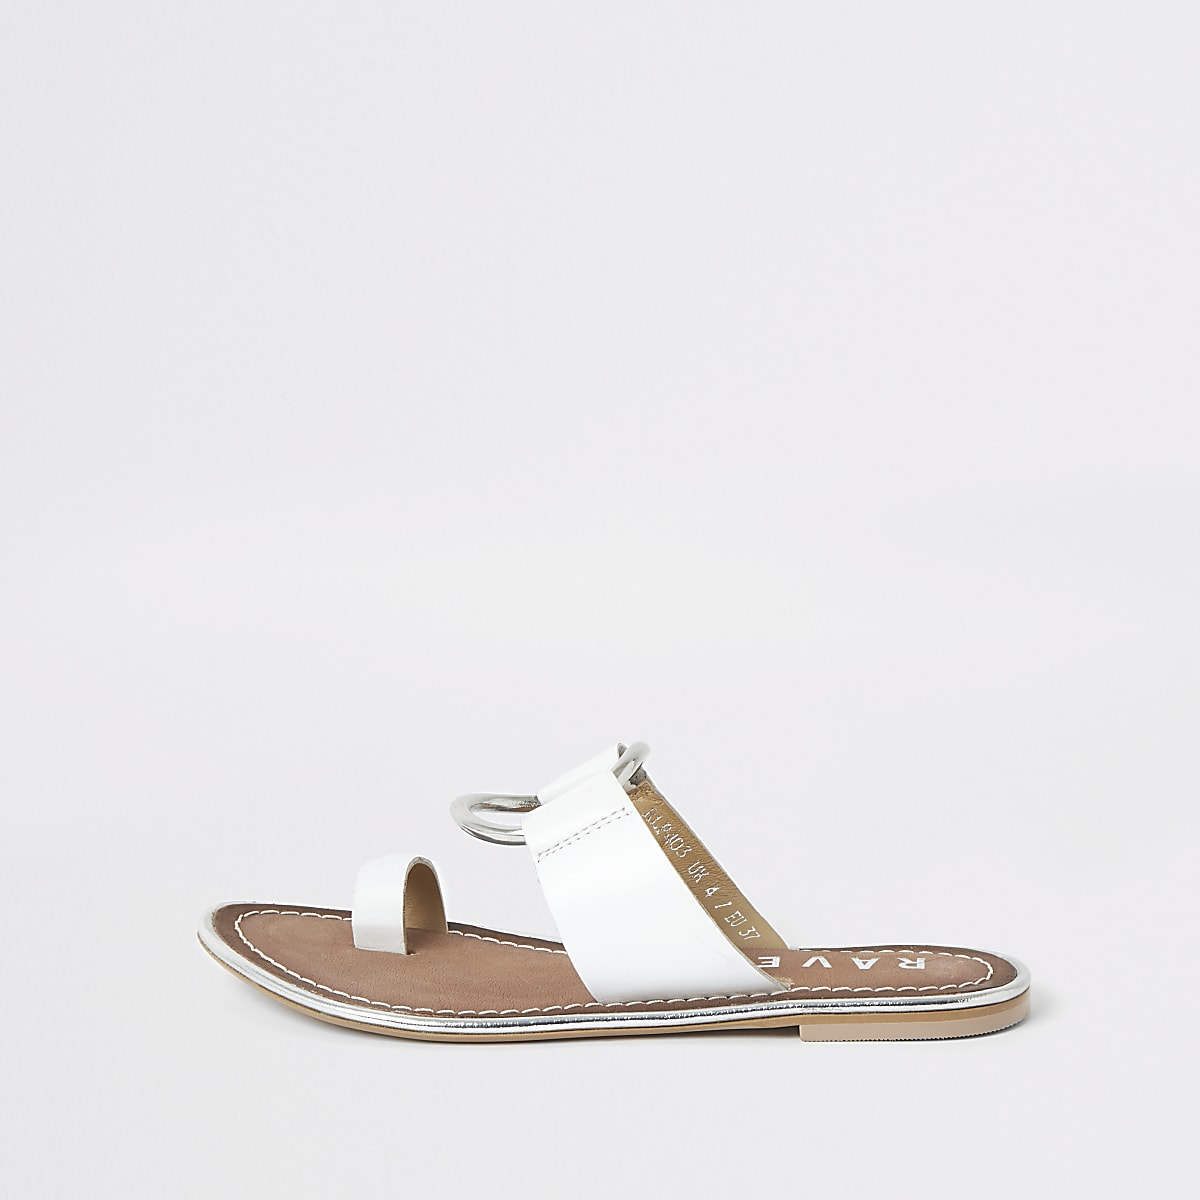 Ravel white ring front sandal